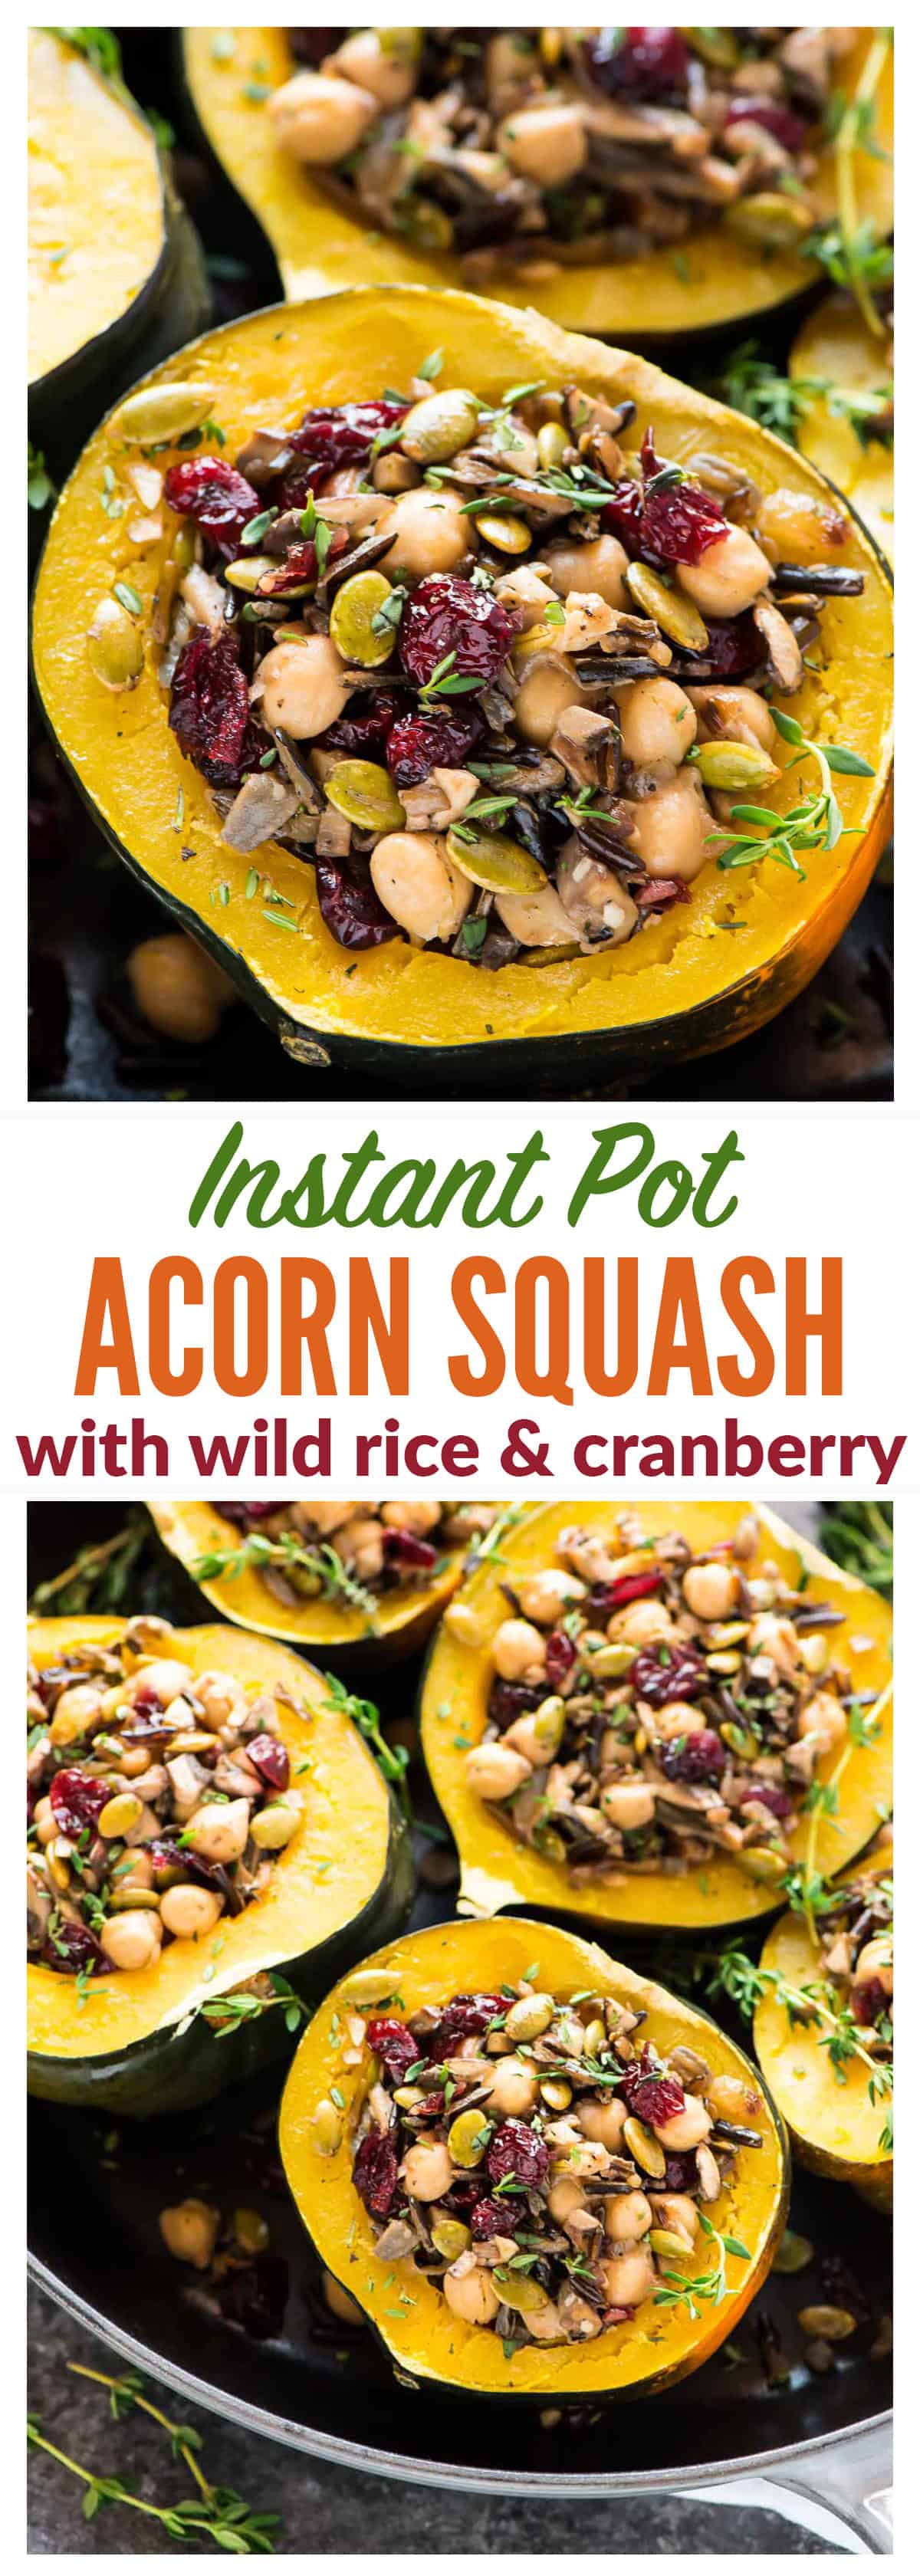 Instant Pot Stuffed Acorn Squash with Wild Rice, Cranberry, Mushroom and Chickpeas. A healthy, filling vegetarian or vegan meal that's so easy and delicious! {vegan, gluten free}